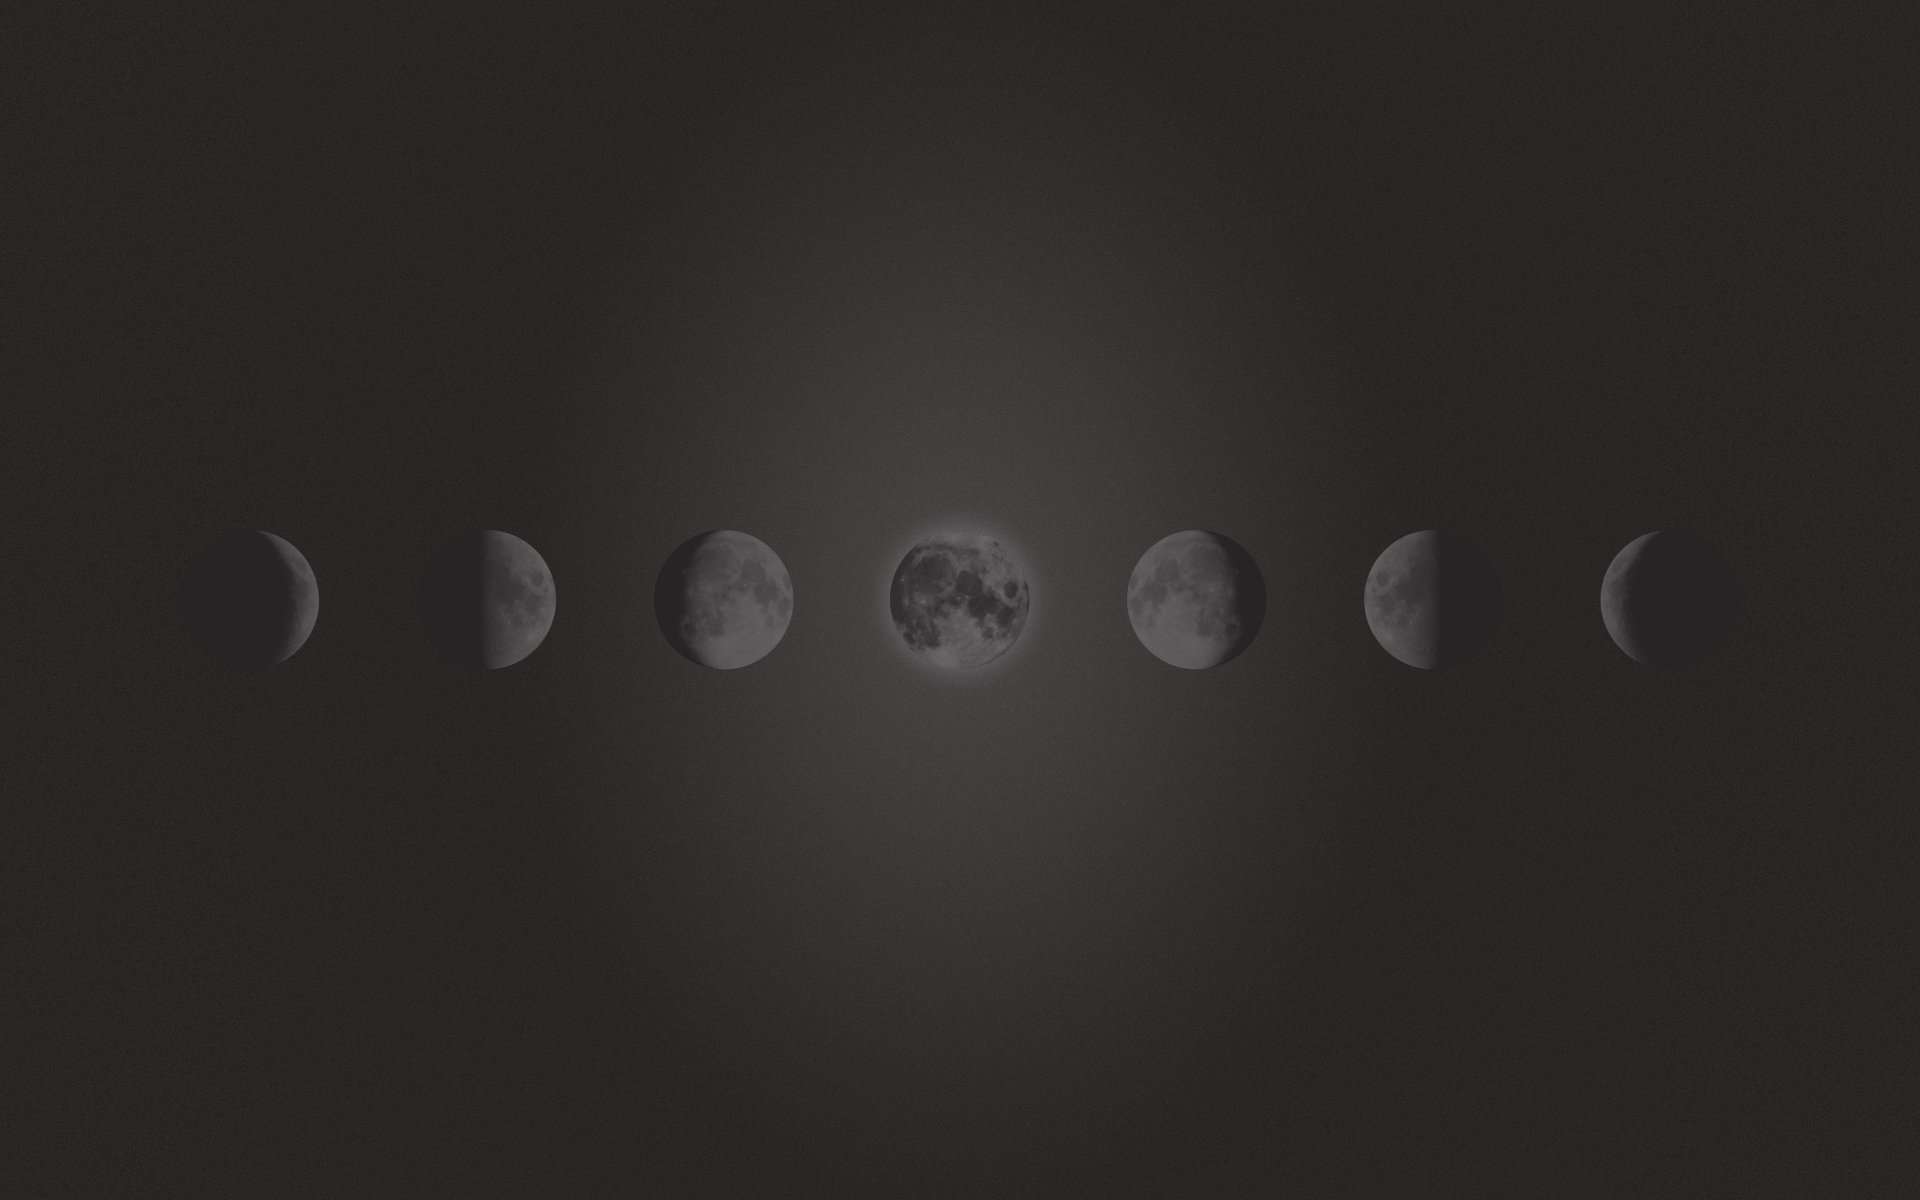 Freebie - Phases Of The Moon Wallpaper - Maddison Designs